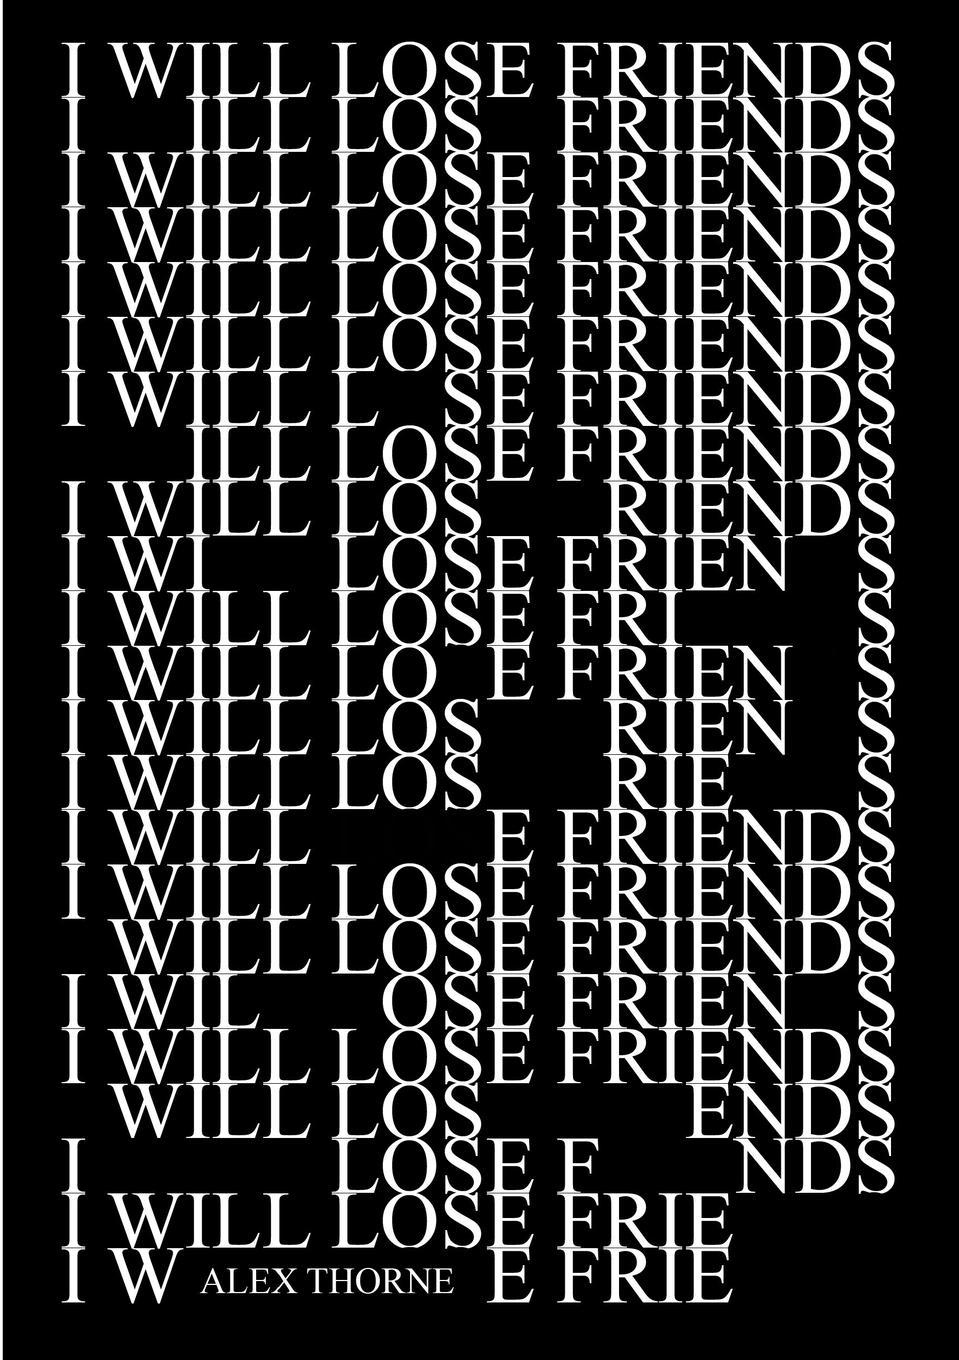 Alex Thorne I Will Lose Friends витамины thorne